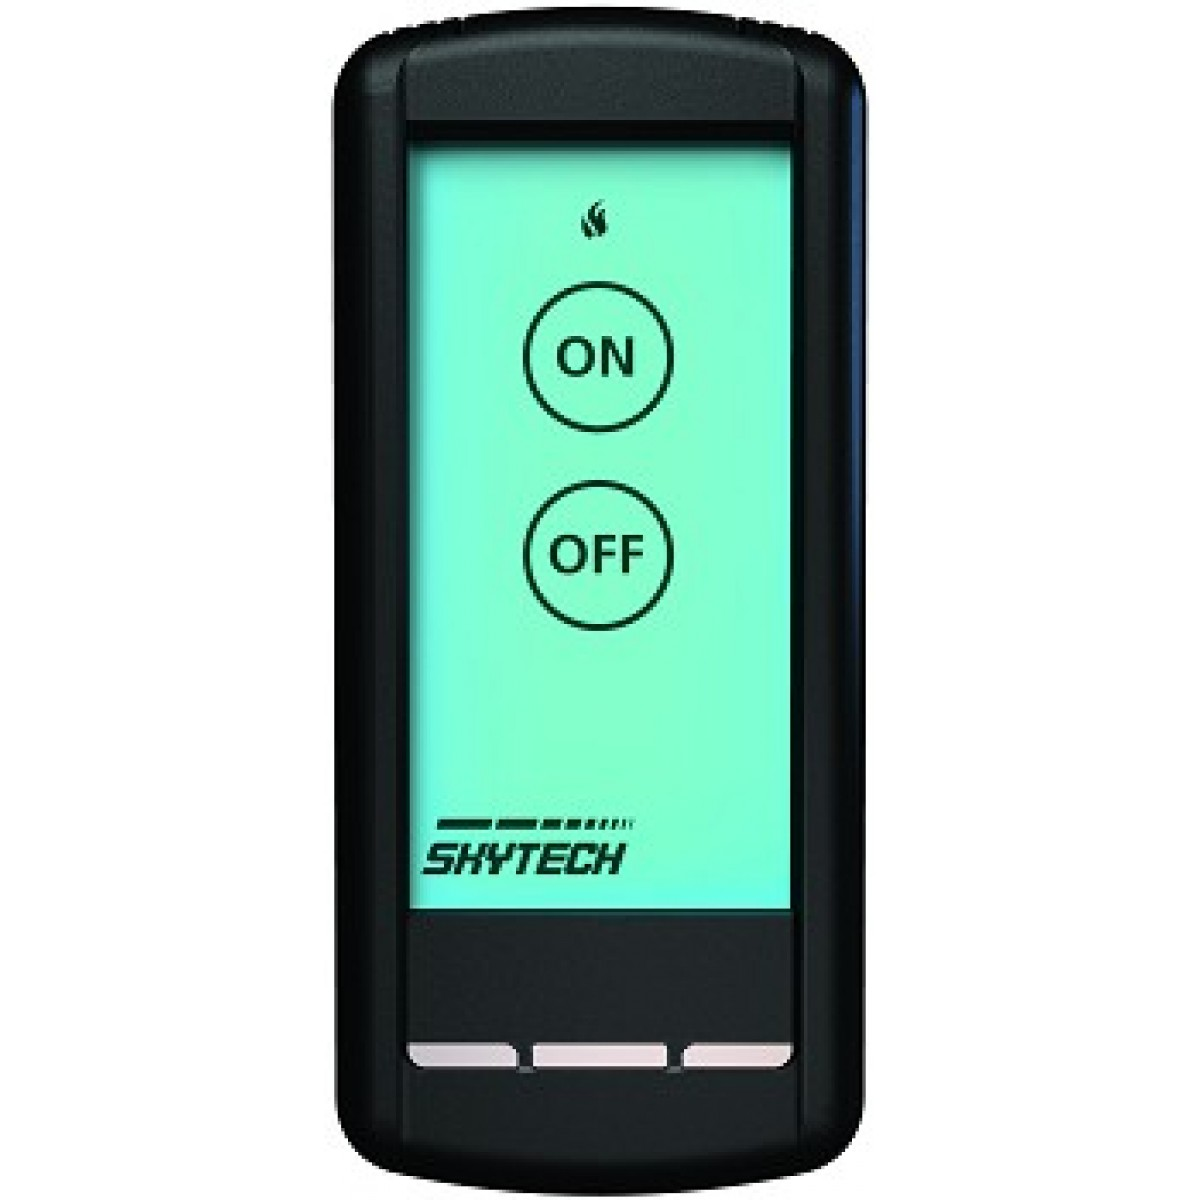 skytech sky 5010 on off fireplace remote control at